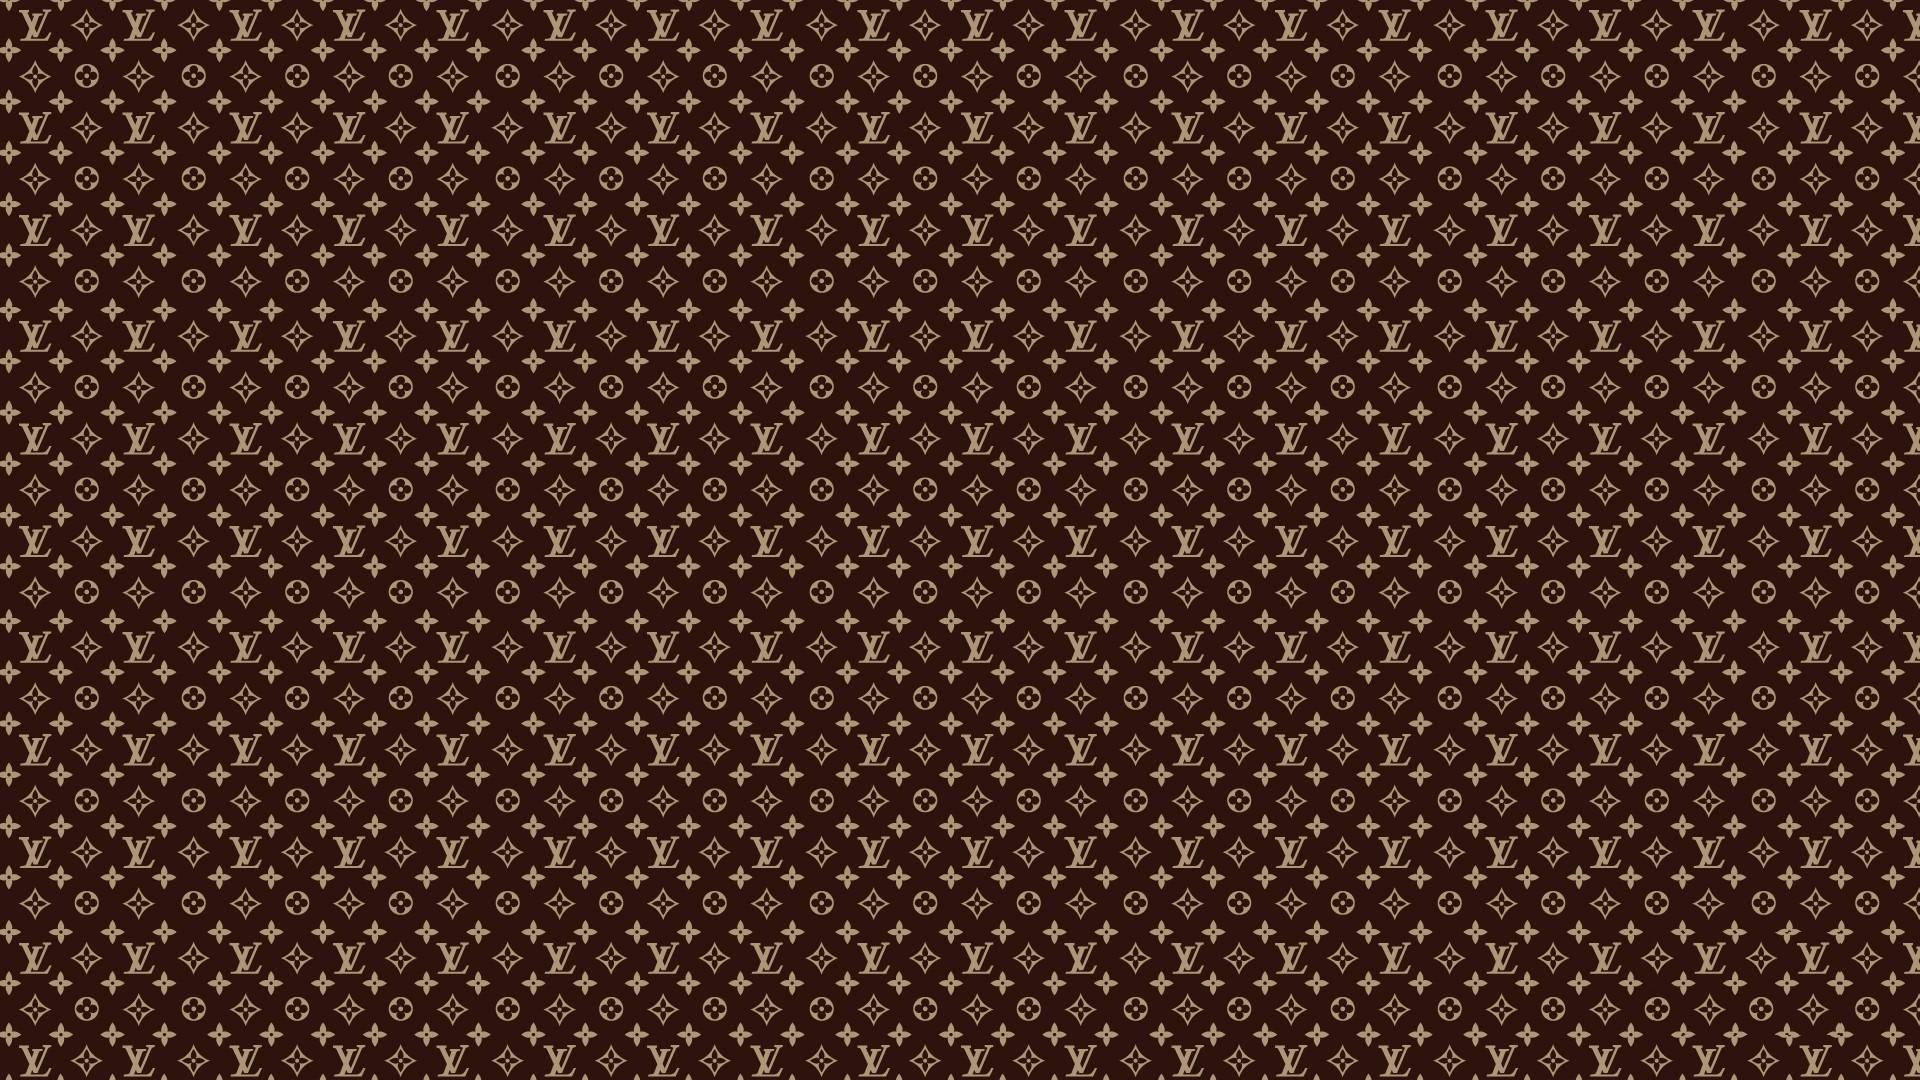 Louis Vuitton Wallpapers Desktop Download HD Backgrounds